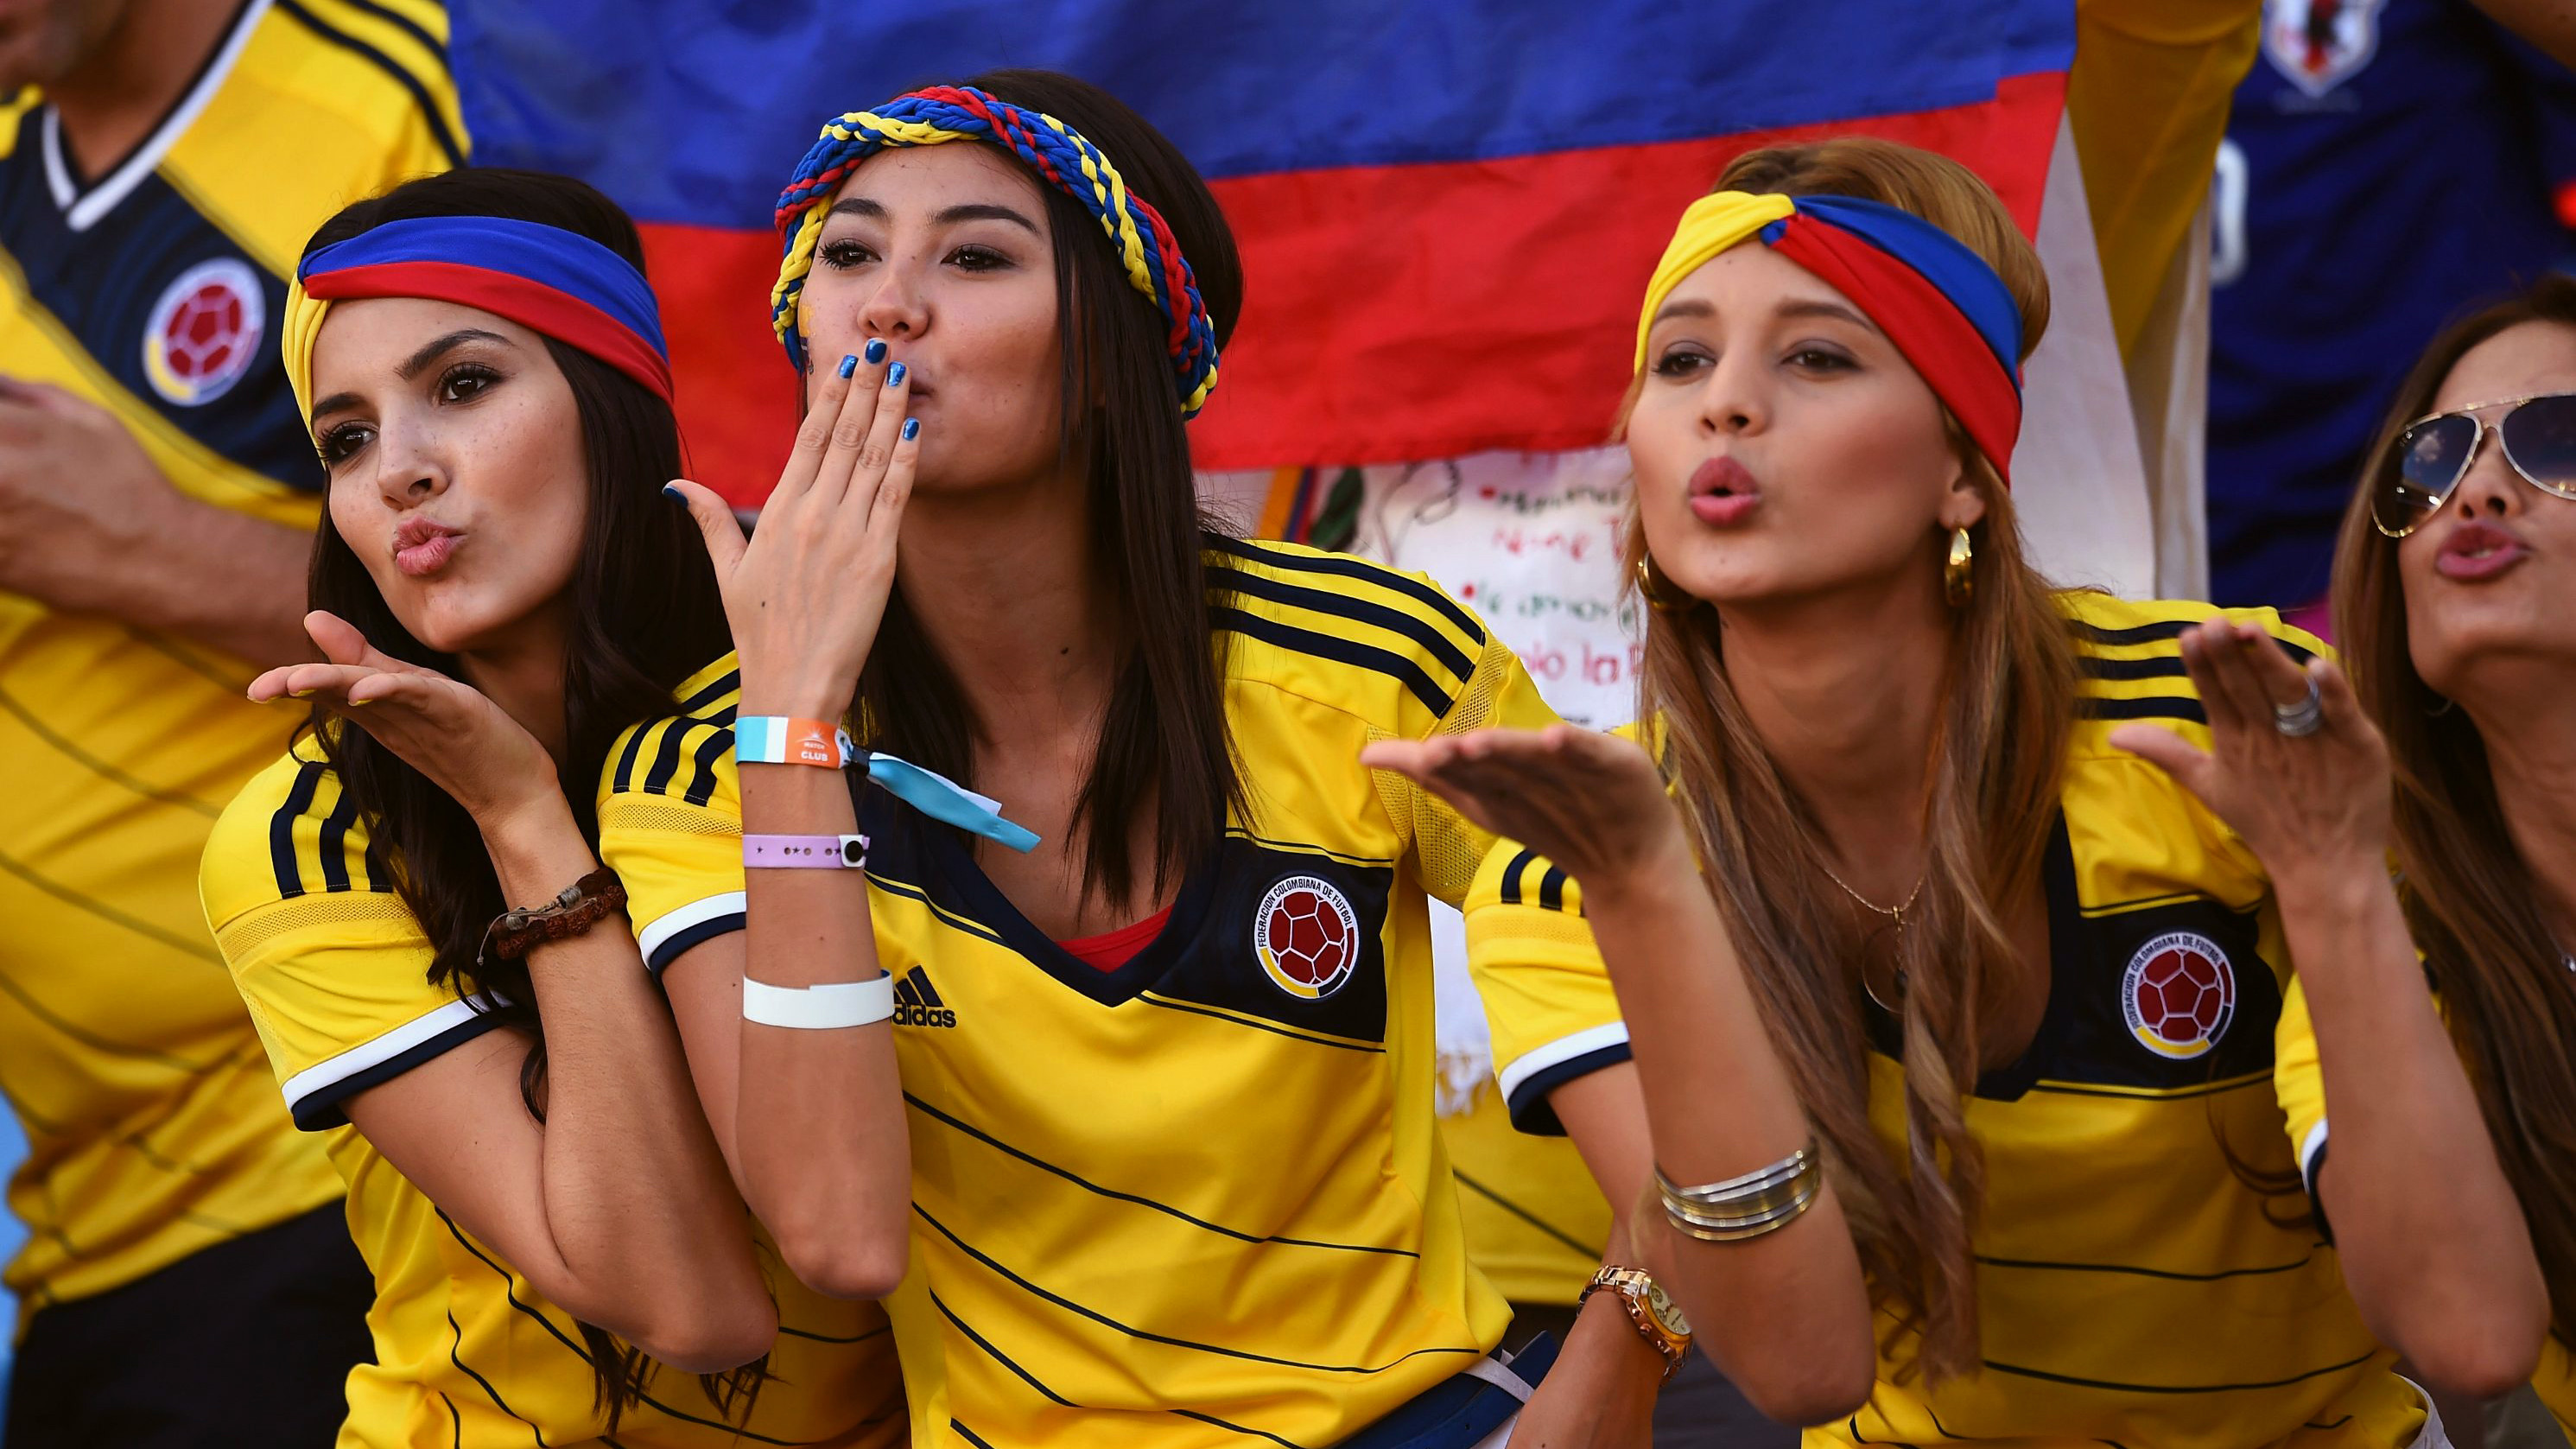 Res: 2982x1677, FIFA World Cup, Women, Colombia Wallpapers HD / Desktop and Mobile  Backgrounds